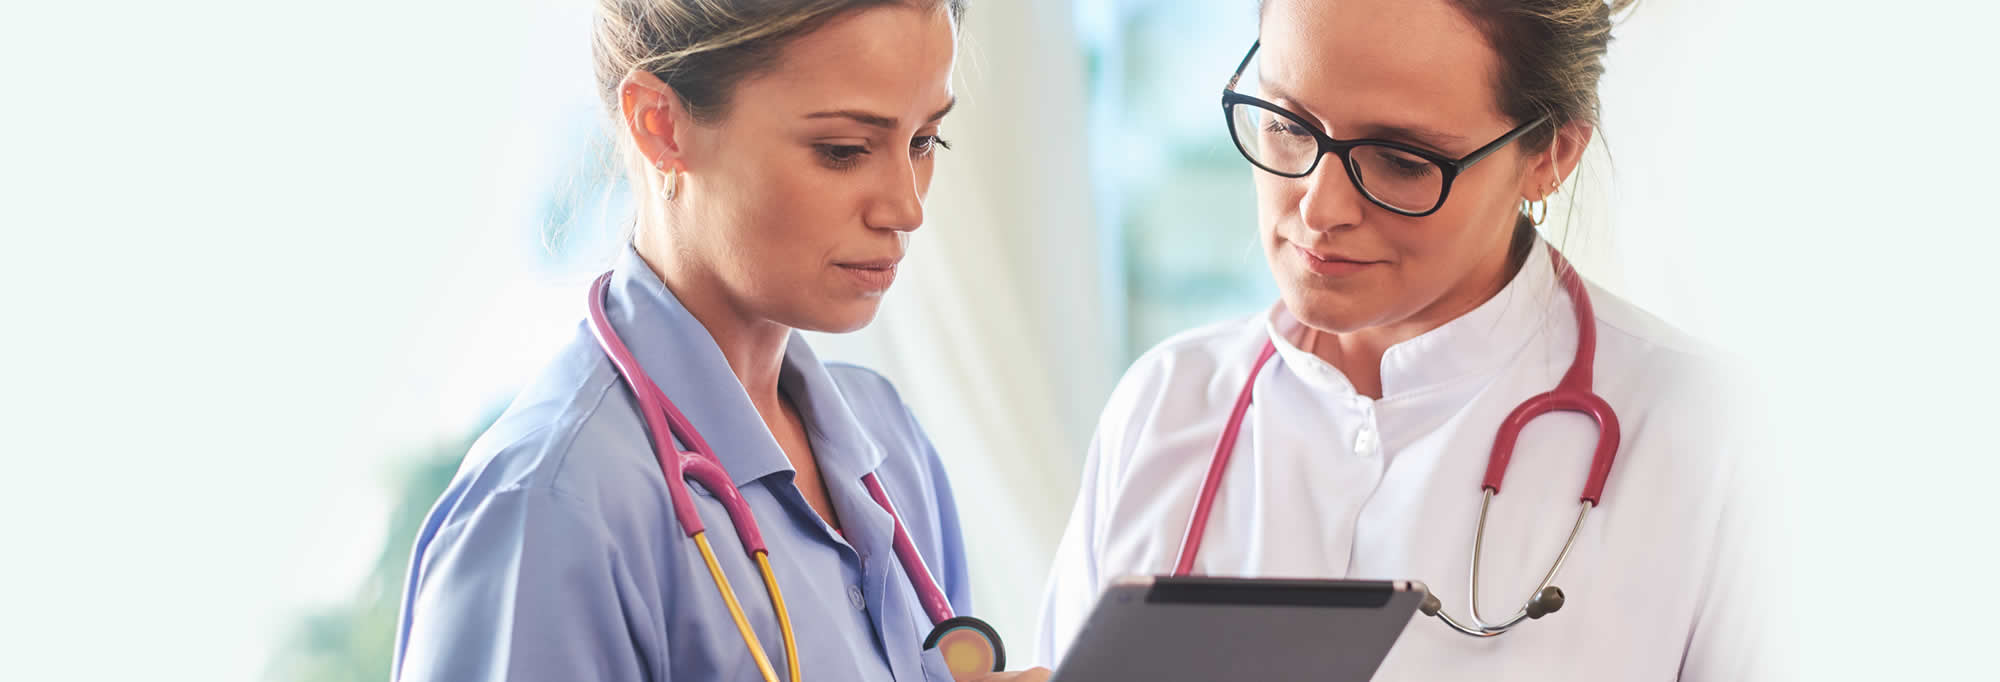 Tips for Finding a Preceptor